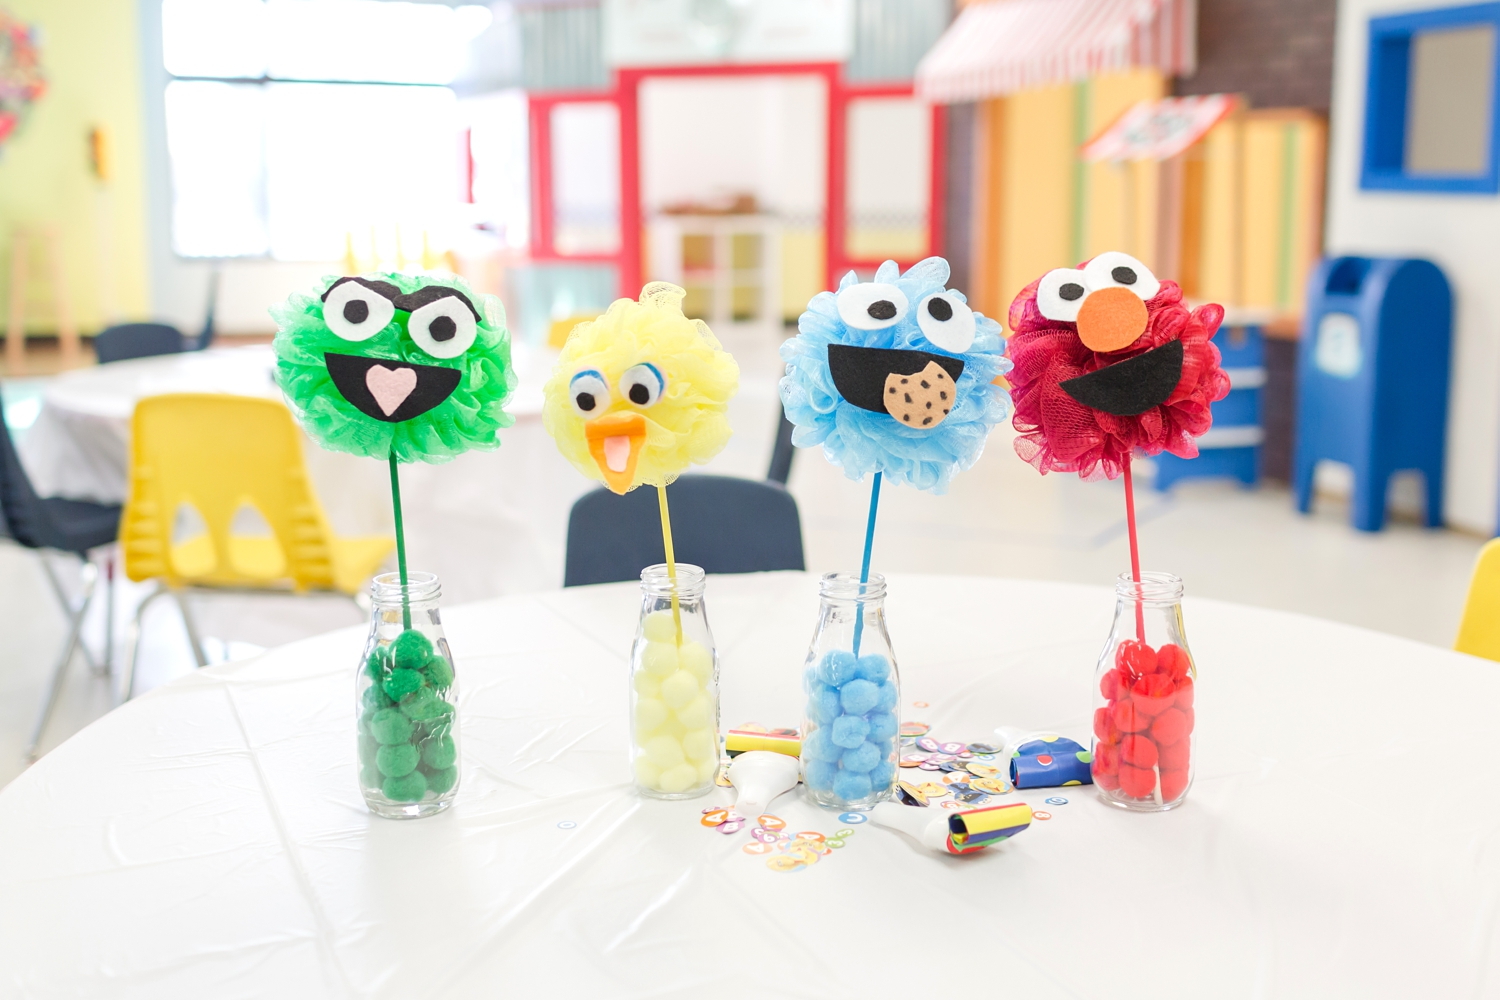 The beauty of pinterest! I combined two different centerpiece ideas I found with the pom-poms and loofa's. I made the faces from felt and painted the sticks and they were done!